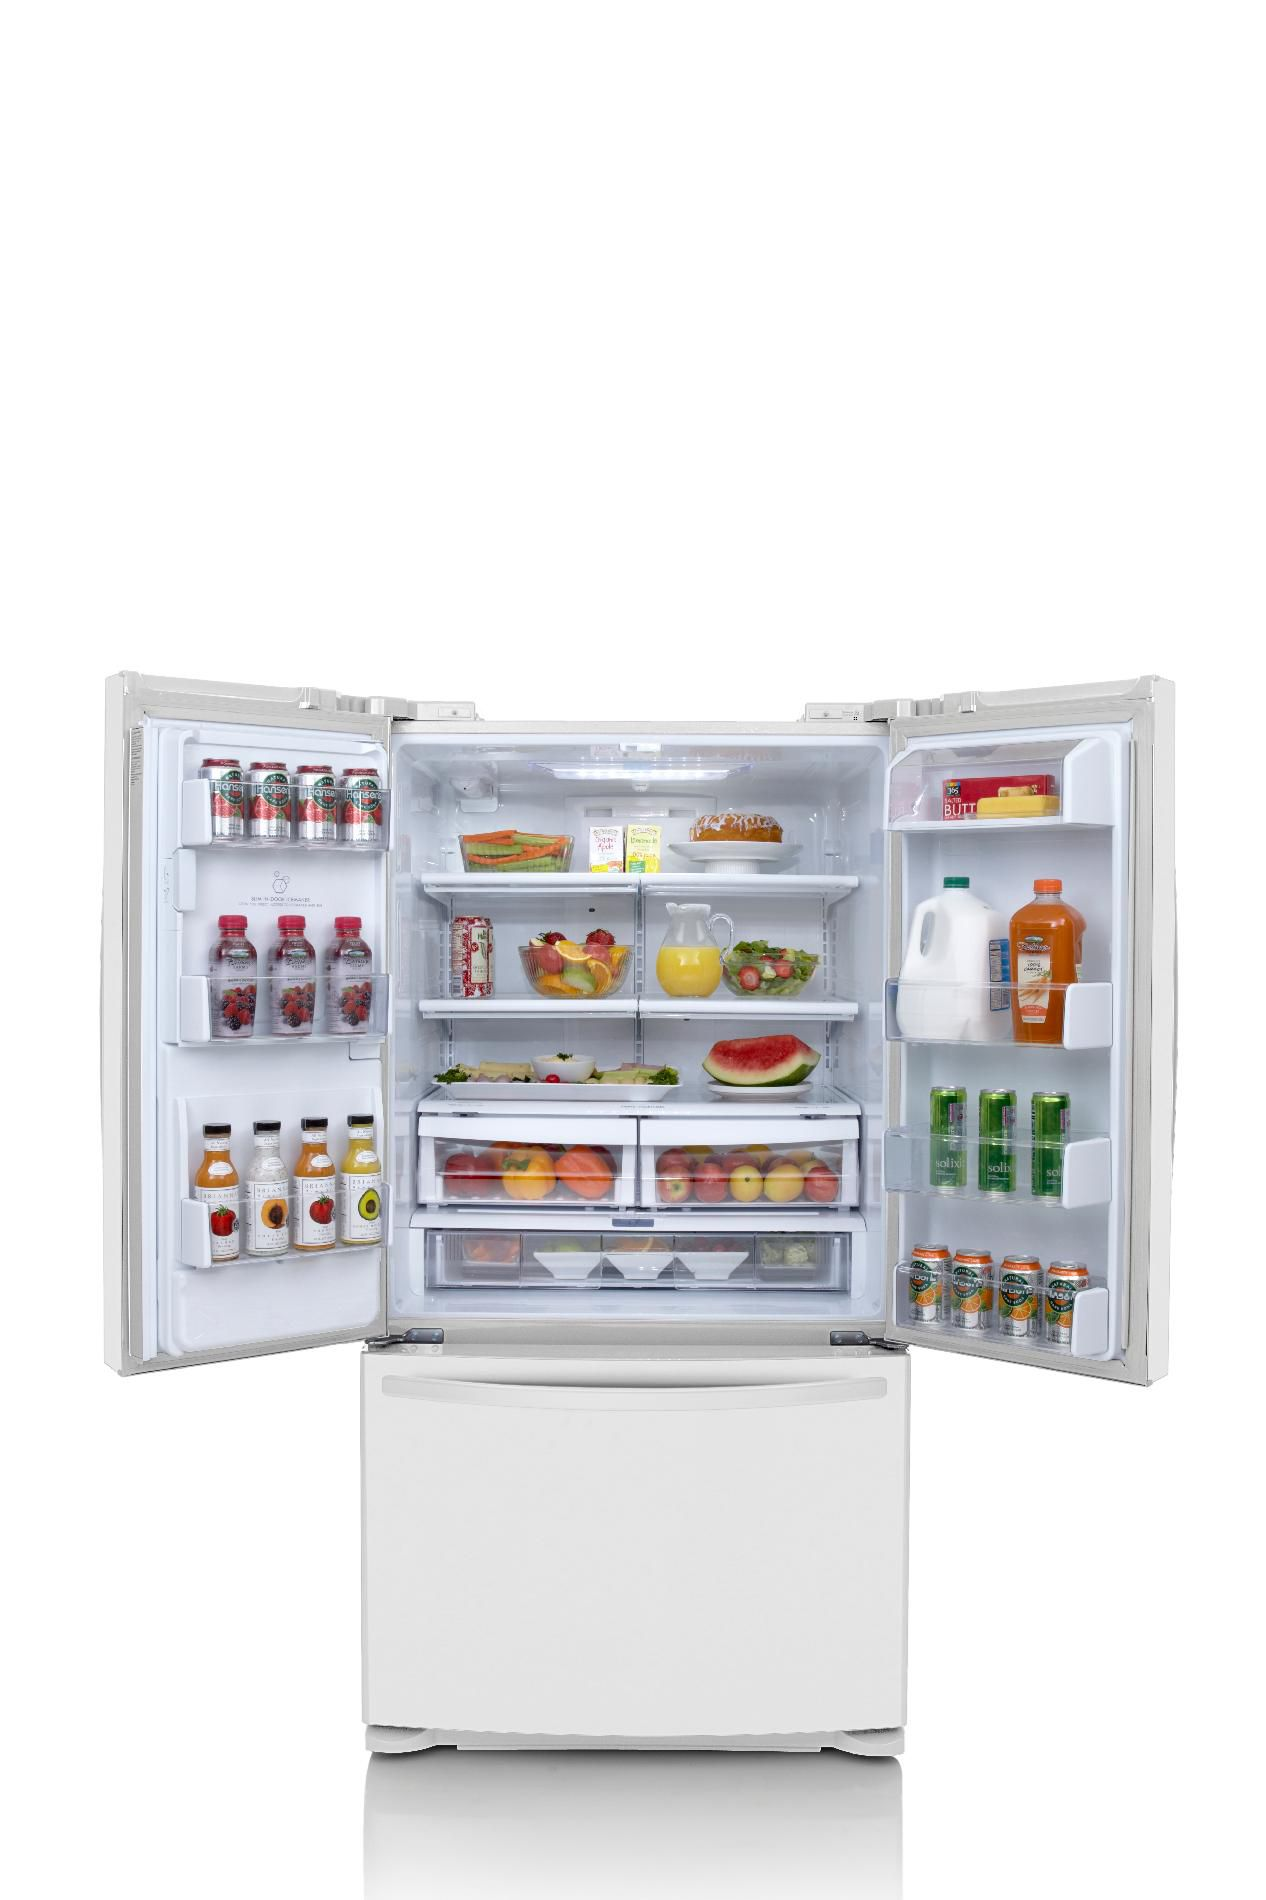 Kenmore 24.7 cu. ft. French-Door Bottom-Freezer Refrigerator - White